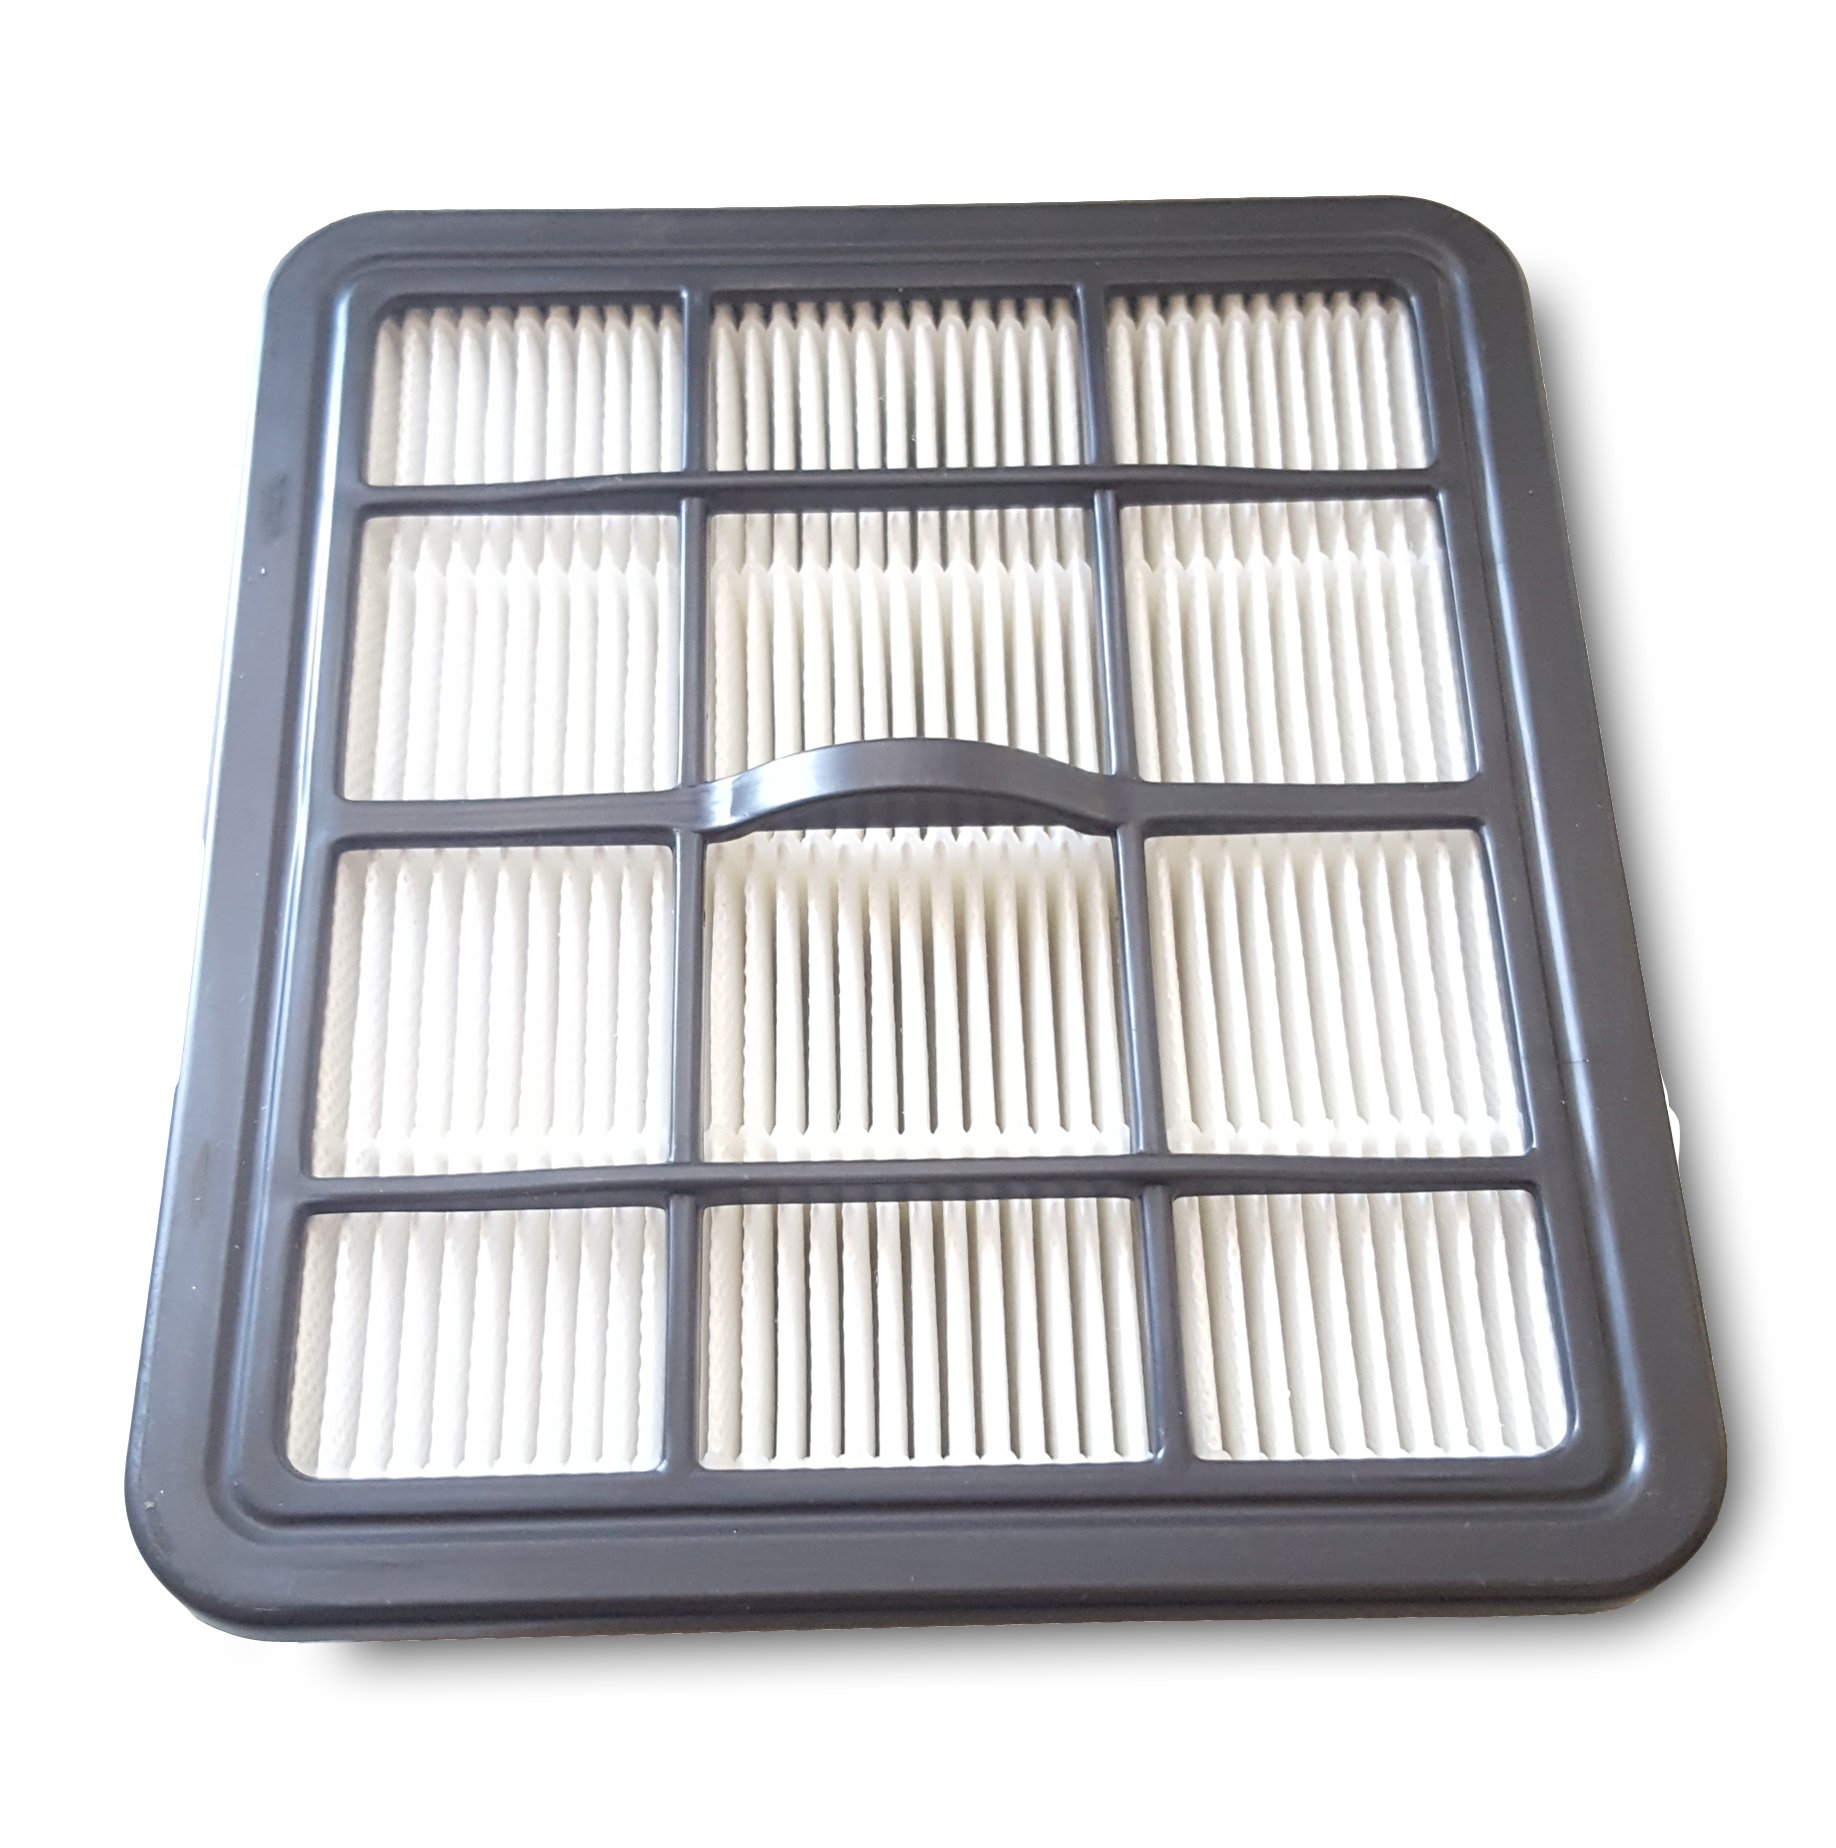 Prolux New Tritan Replacement HEPA Filter by Prolux